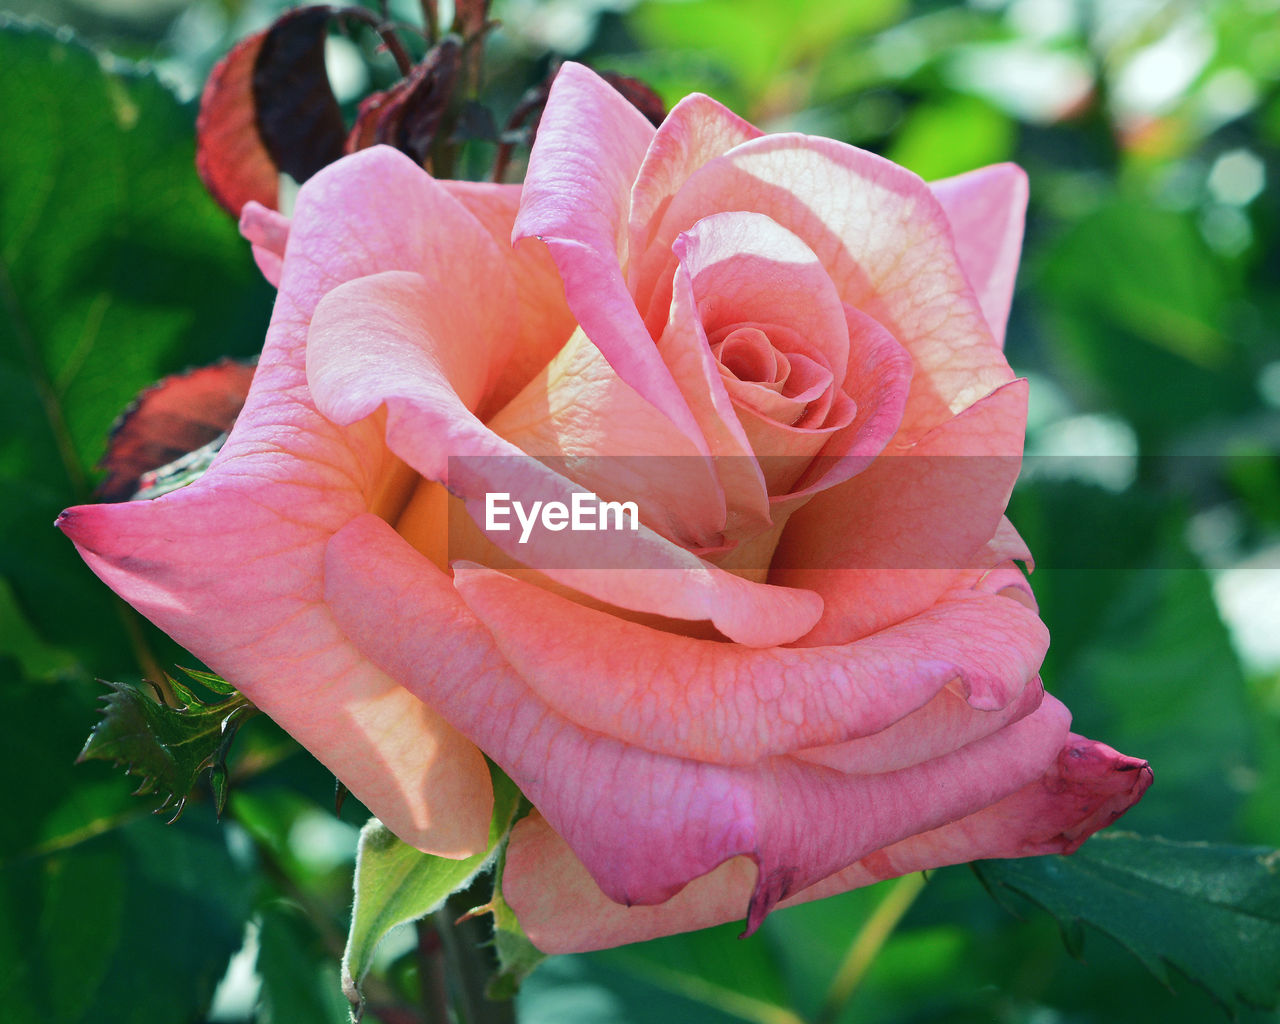 petal, flower, nature, beauty in nature, plant, flower head, pink color, growth, rose - flower, fragility, close-up, outdoors, no people, freshness, blooming, day